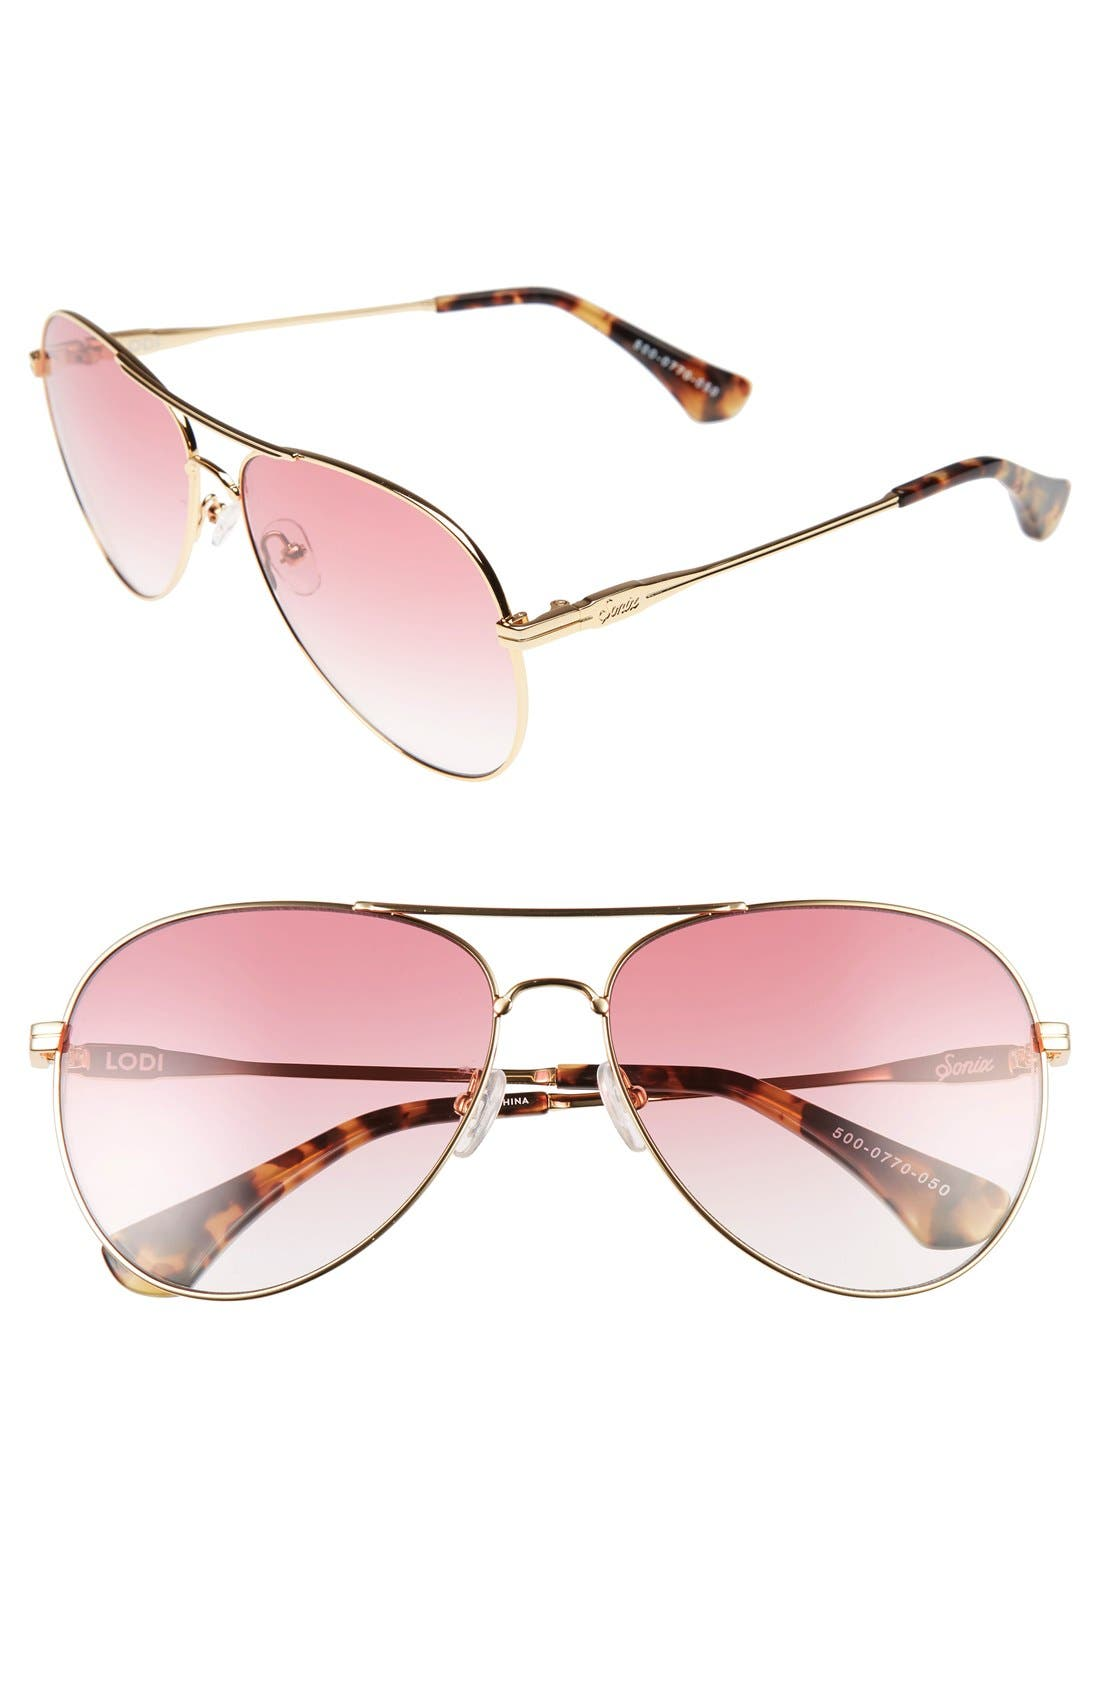 Lodi 62mm Mirrored Aviator Sunglasses,                         Main,                         color, Rouge/ Gold